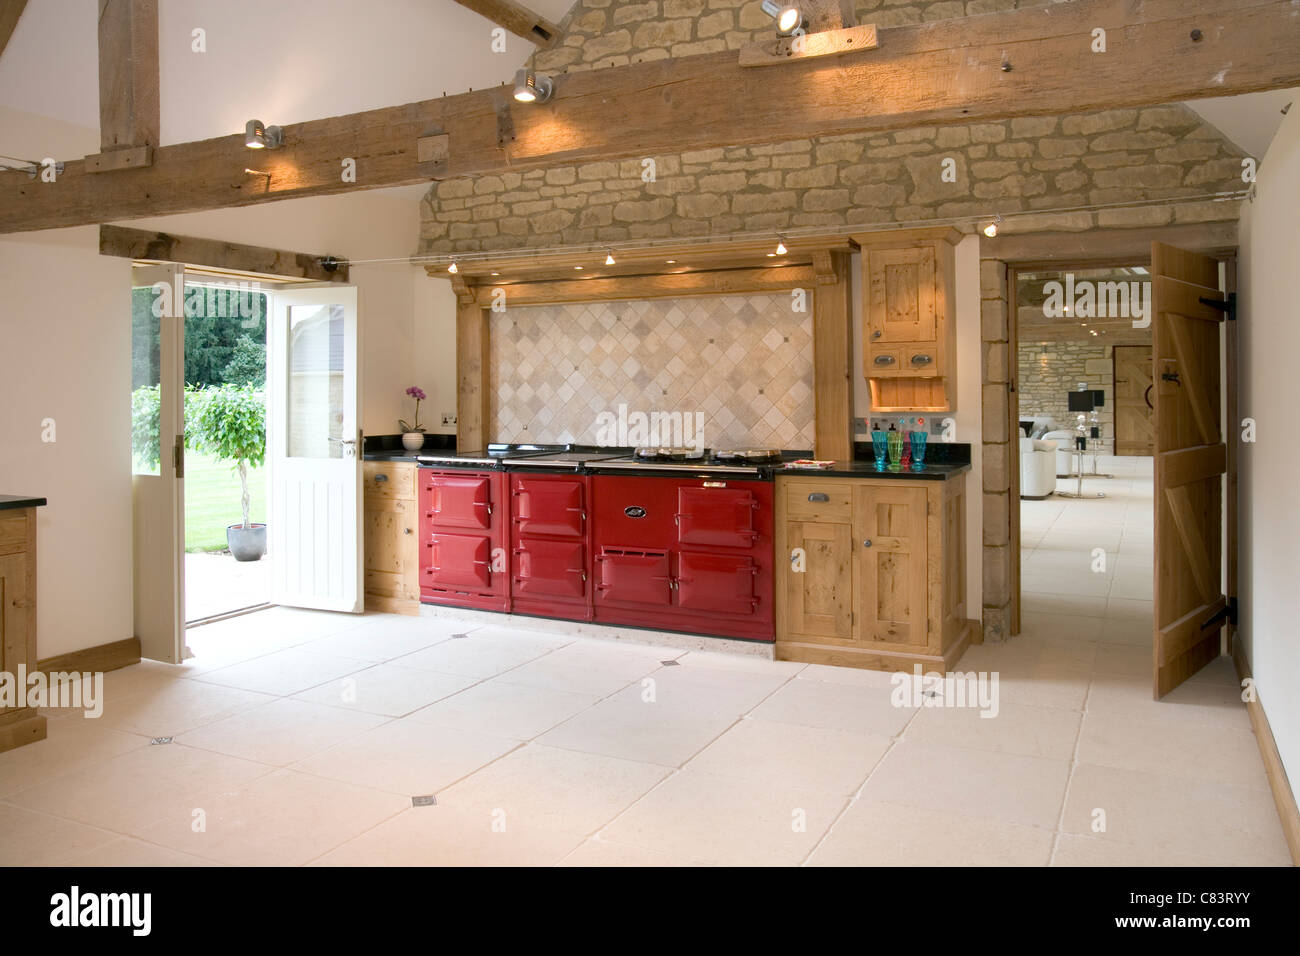 Brand New Contemporary Upmarket Fitted Kitchen With Aga Cooker Stock Photo Alamy